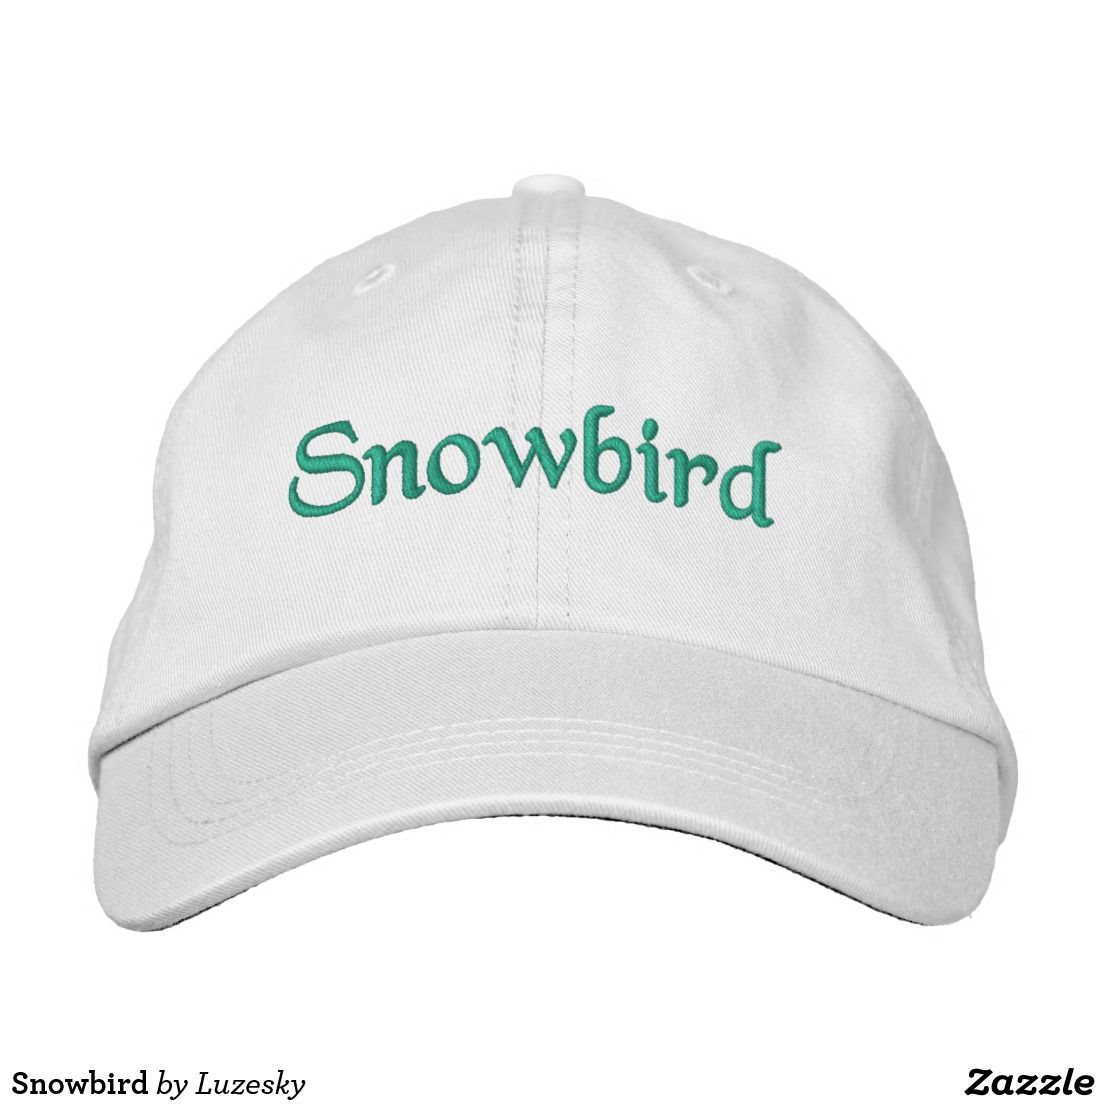 9619ac7f0 Snowbird Embroidered Baseball Cap | Zazzle.com in 2019 | Lykens ...